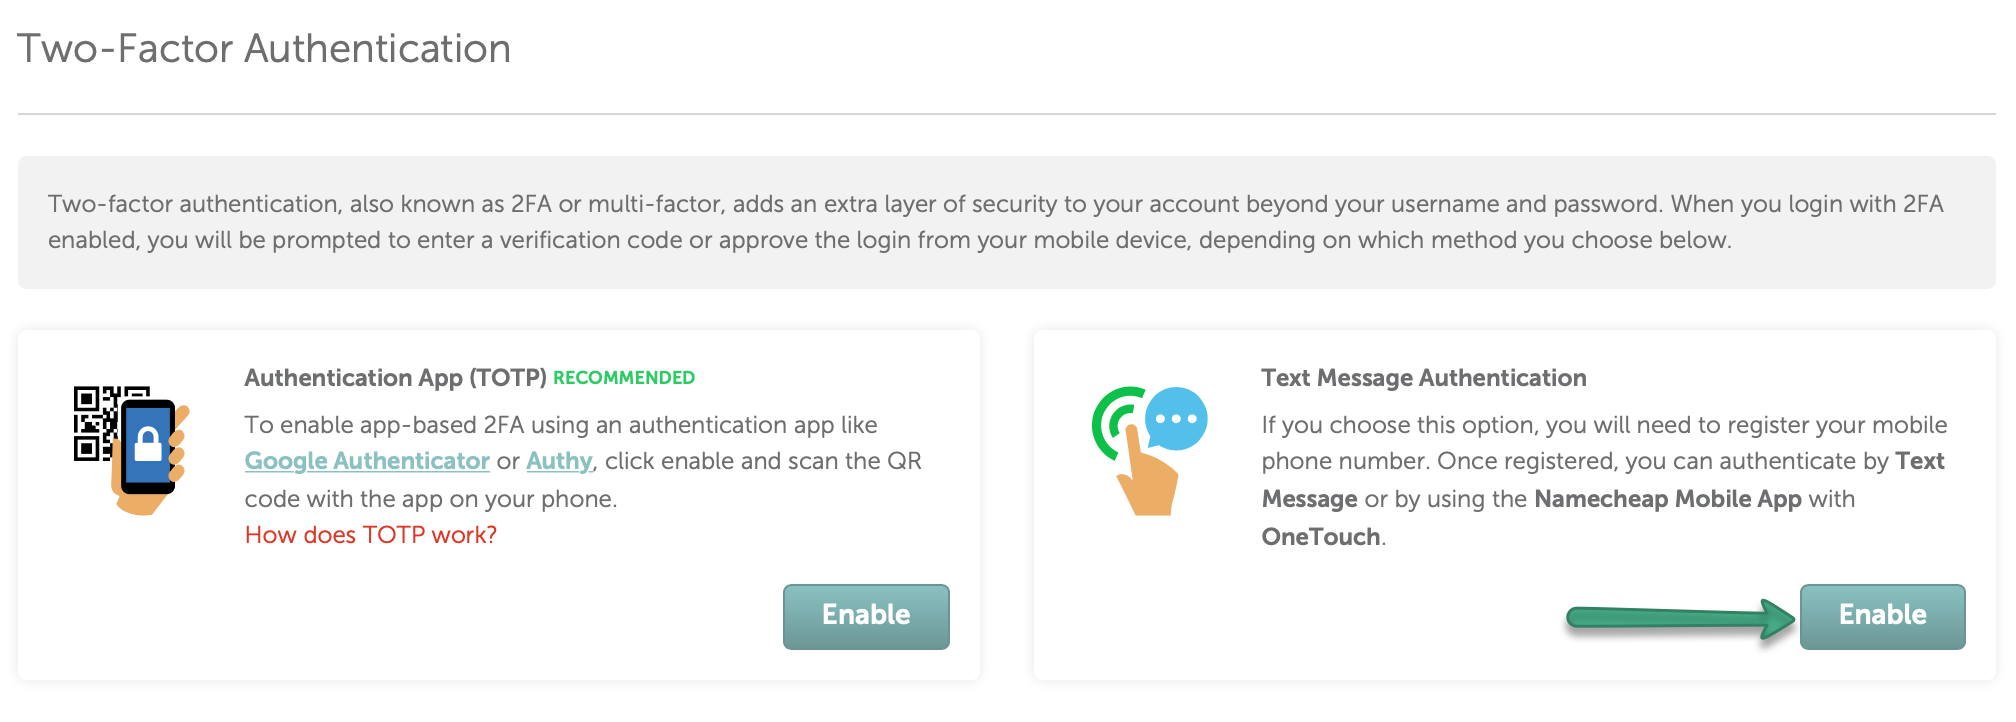 How can I use the OneTouch method for Two-Factor Authentication?